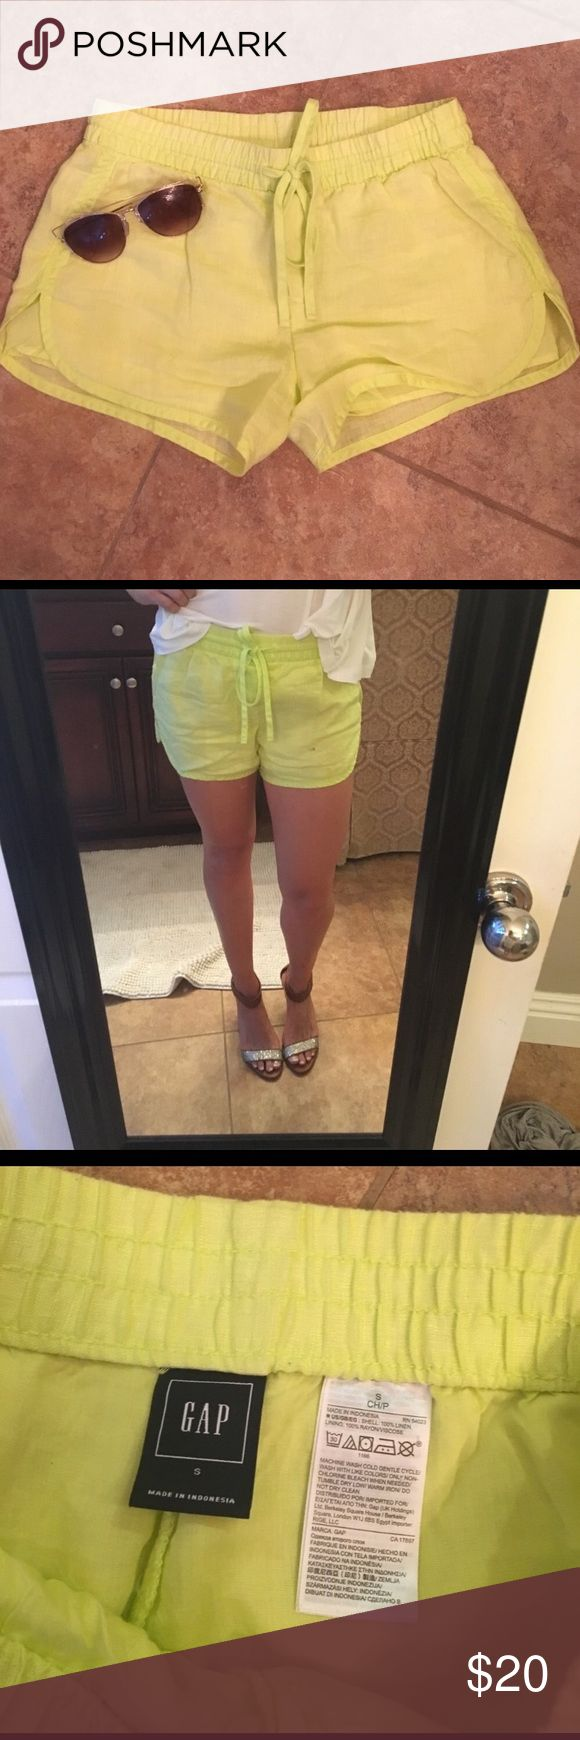 Linen neon yellow shorts by Gap Size small, worn once, brand new condition, no flaws GAP Shorts